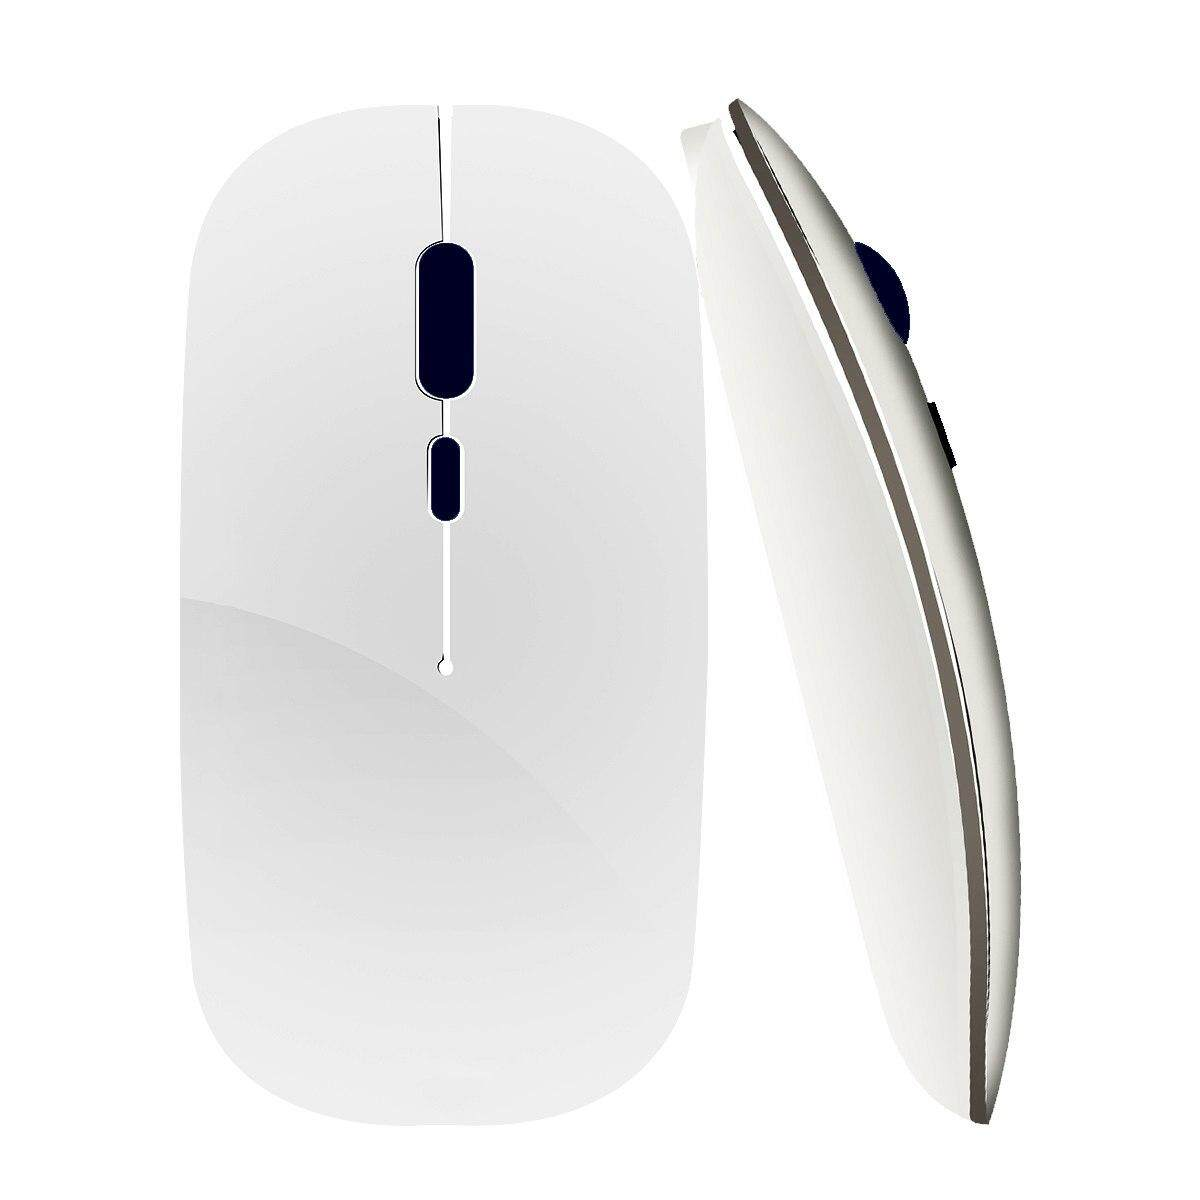 Wireless Mouse Rechargeable Computer Mouse USB Silent Ergonomic Mause Portable Ultra Thin Mute Mice For PC